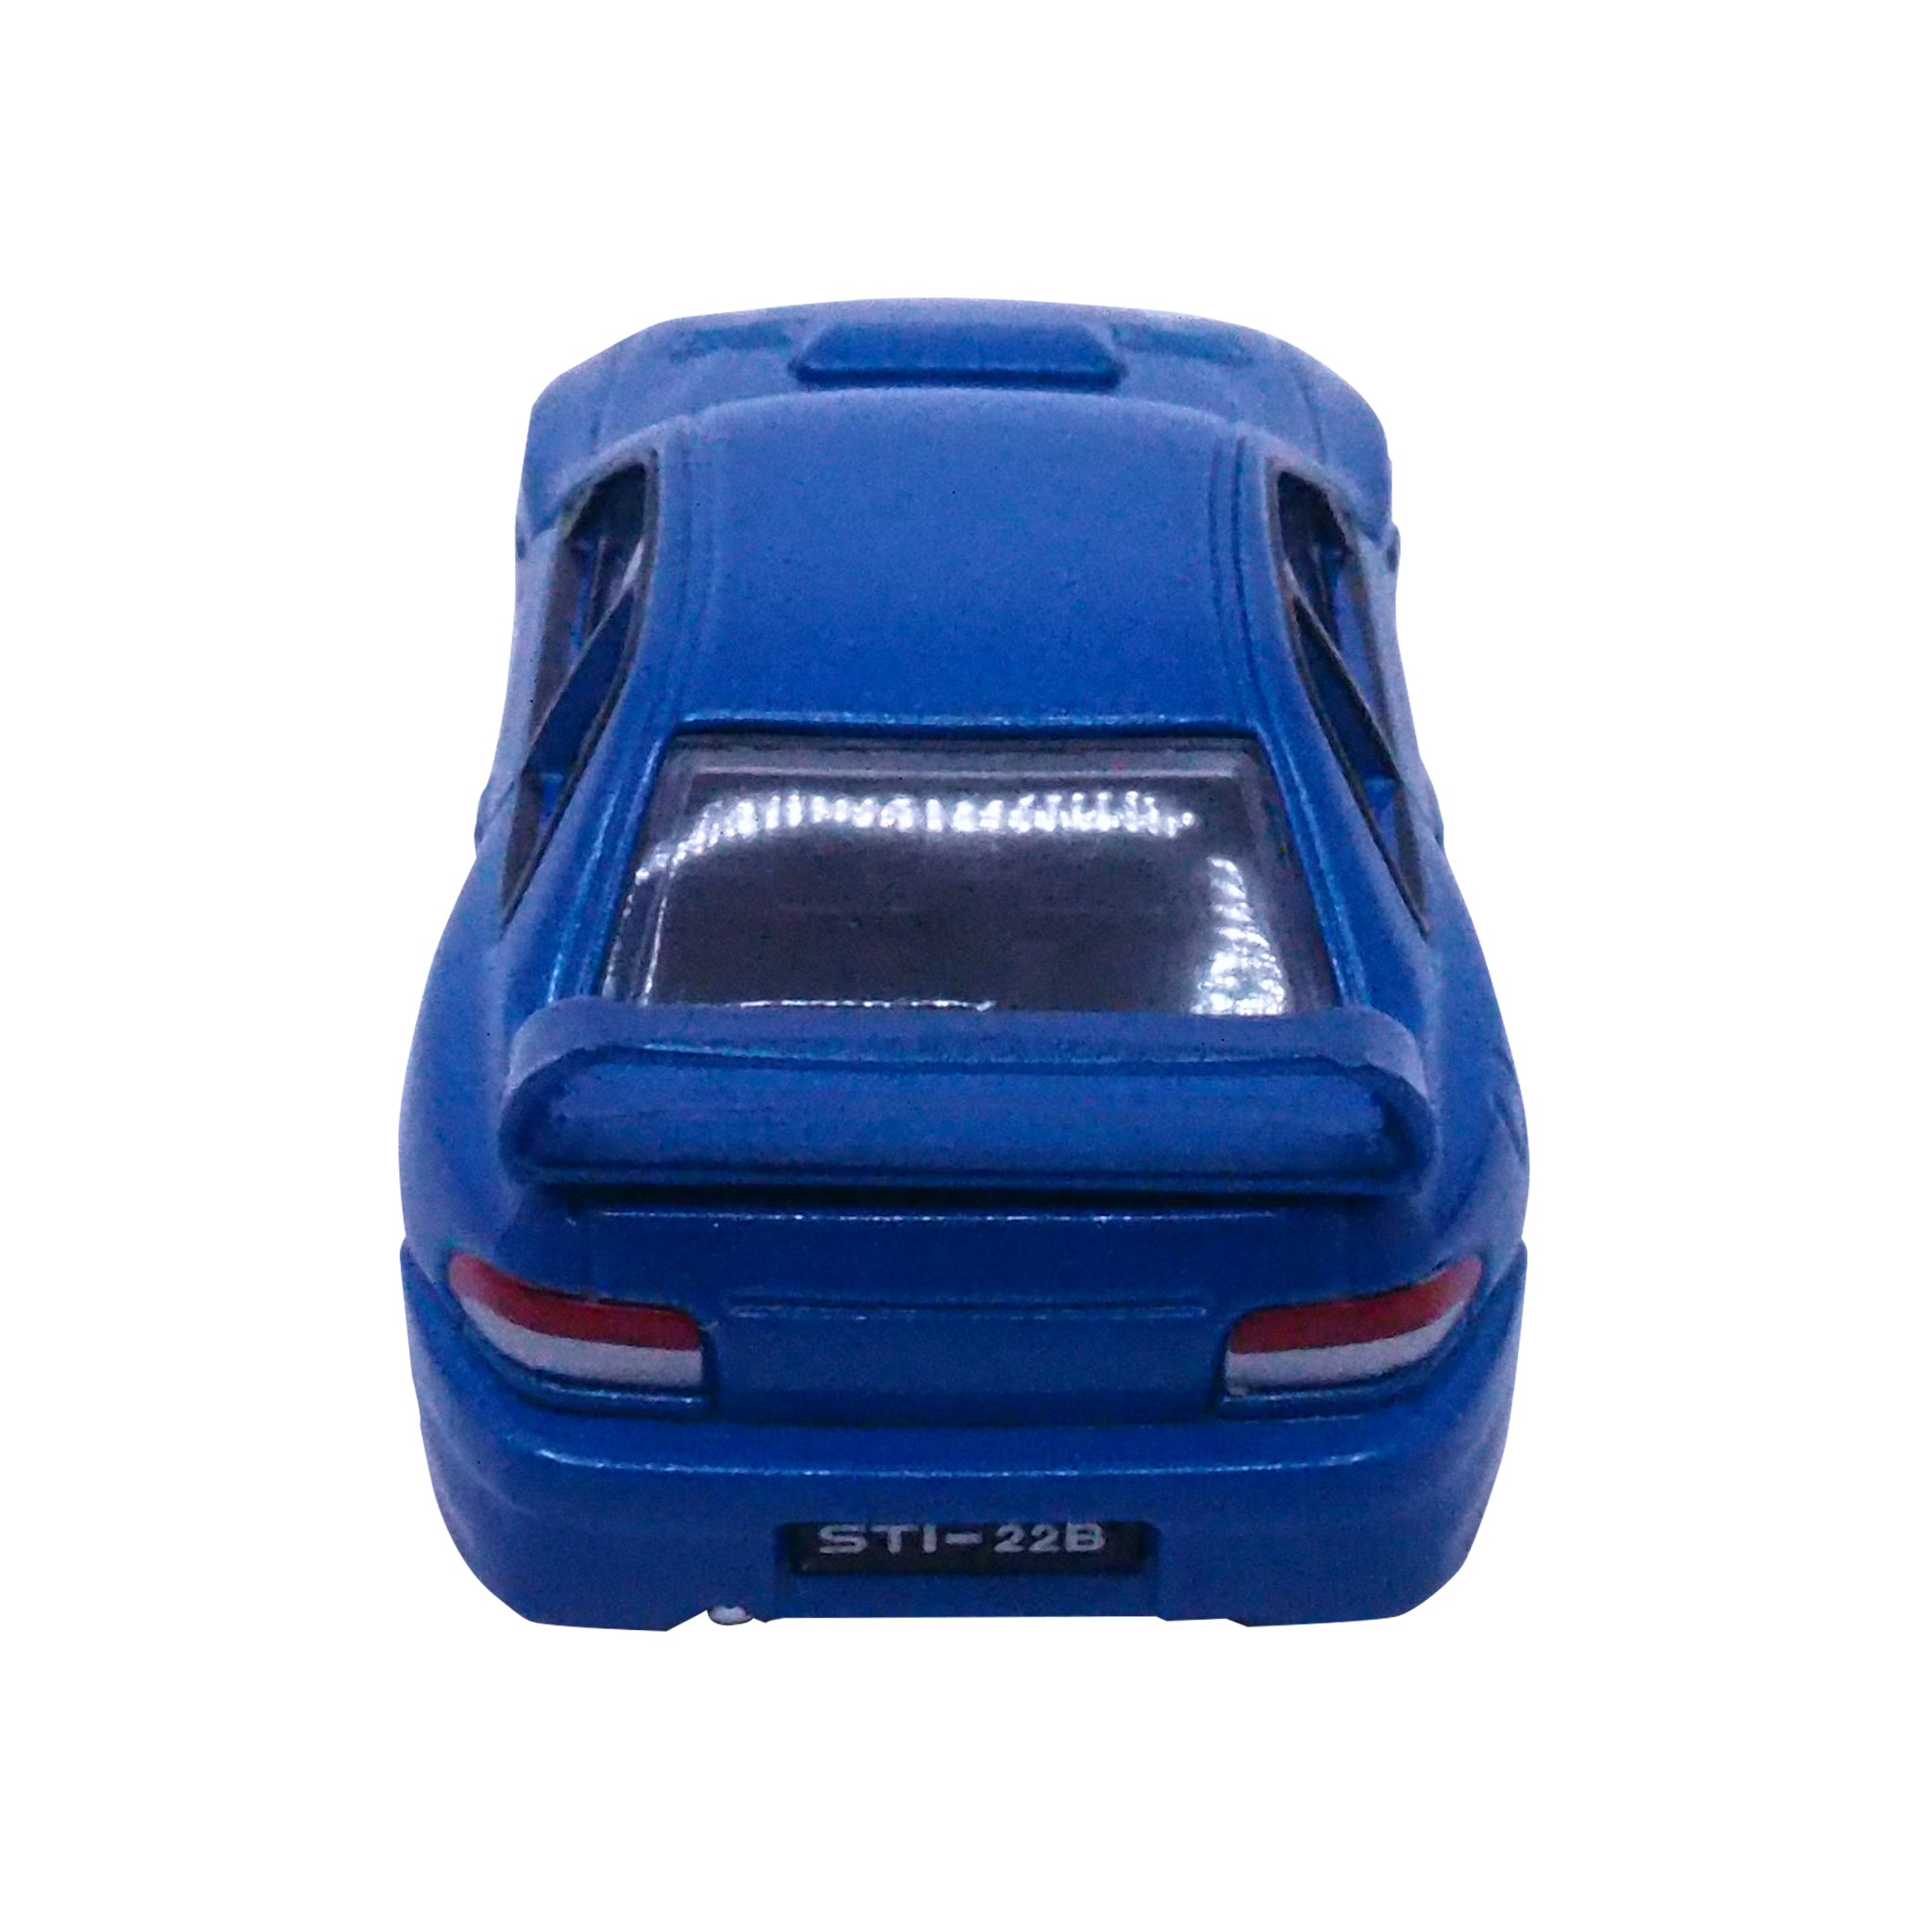 Subaru STI Diecast Model Car 1998